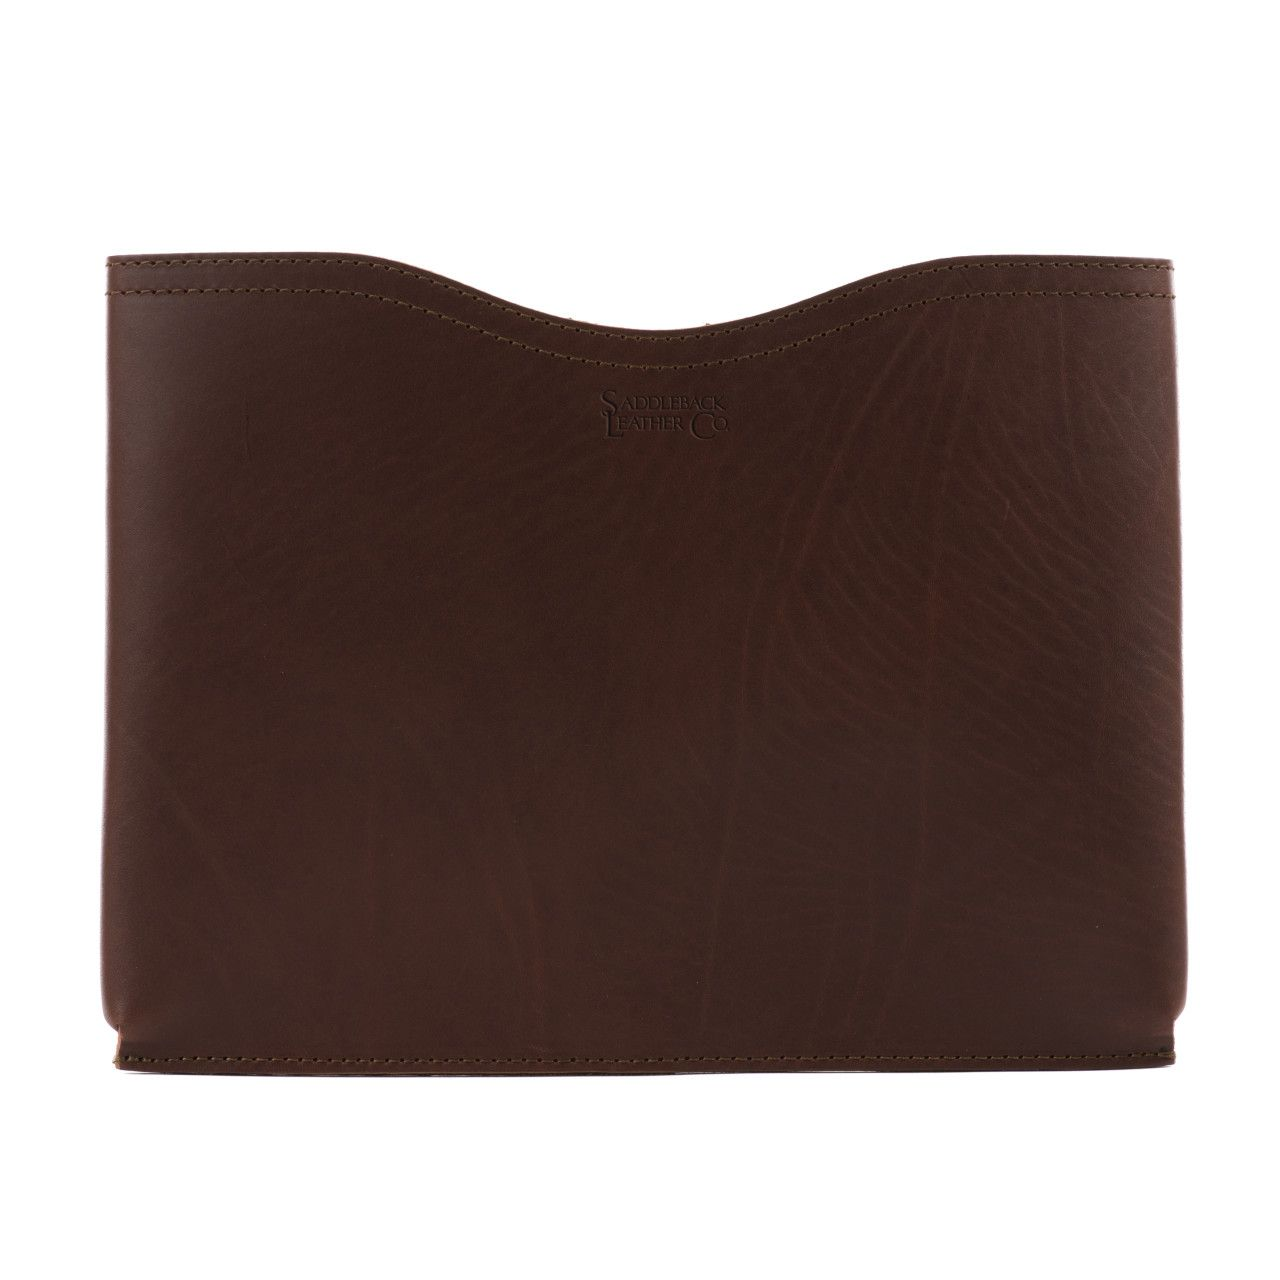 macbook pro leather sleeve medium in chestnut leather